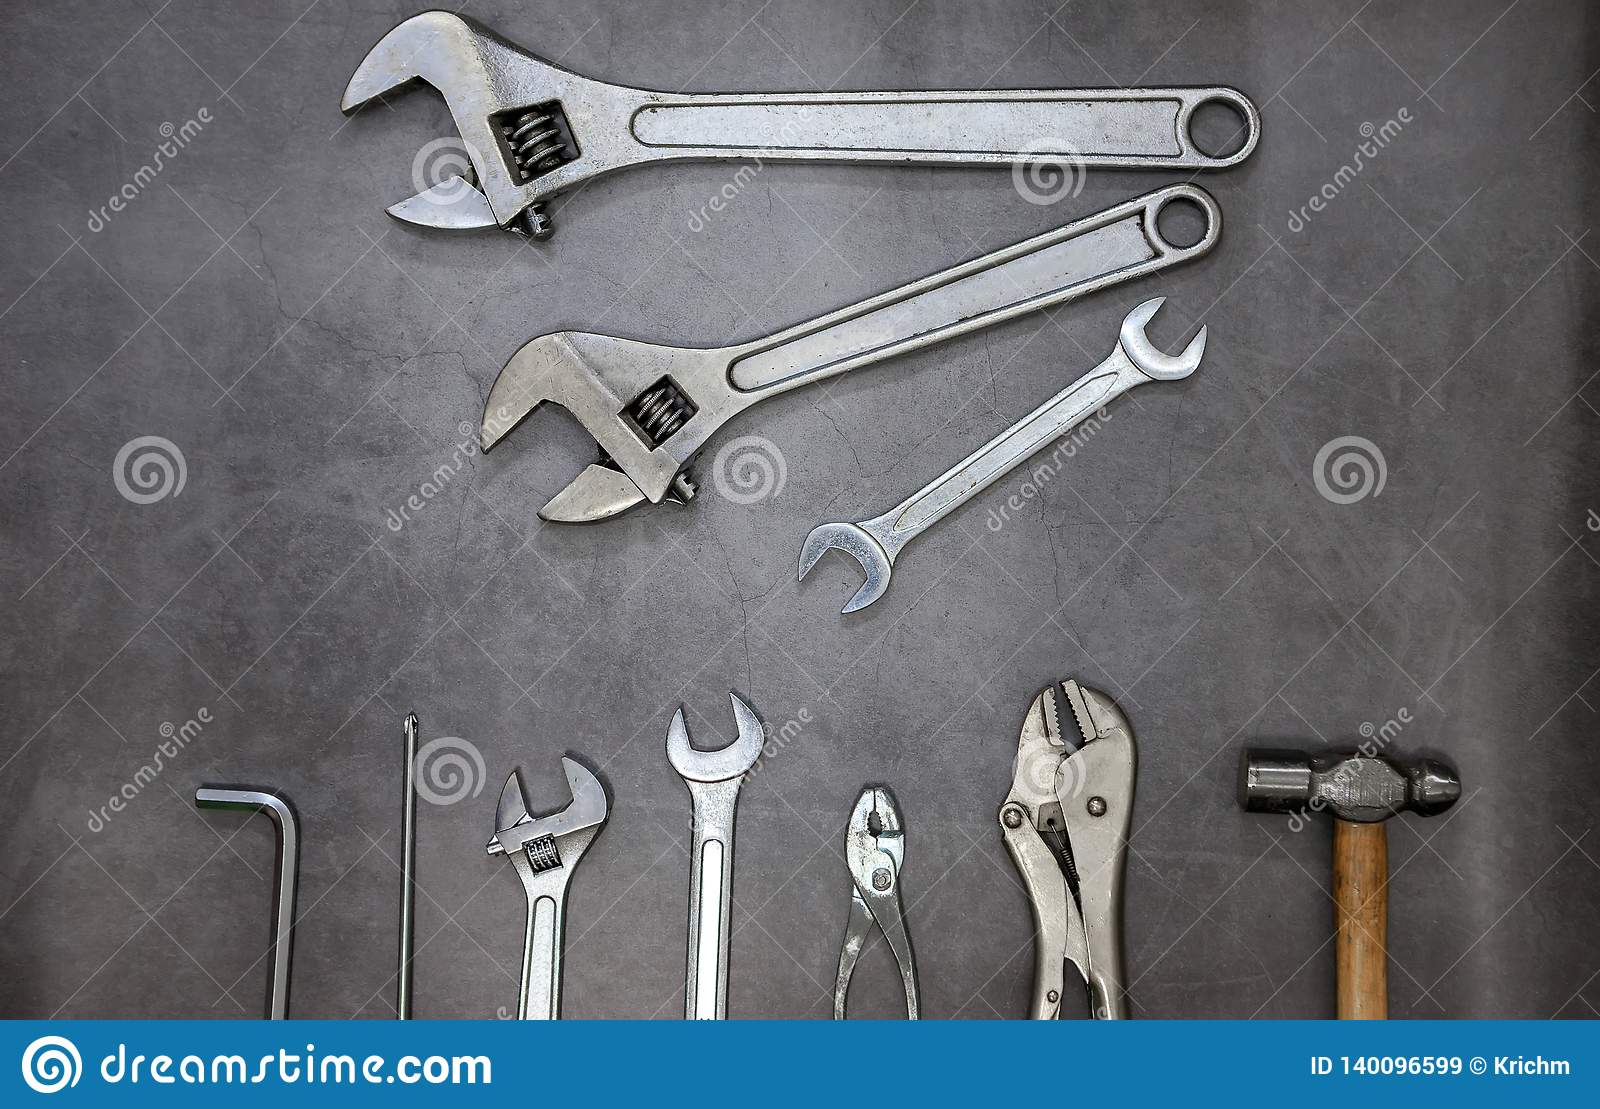 Construction tooling and improvement